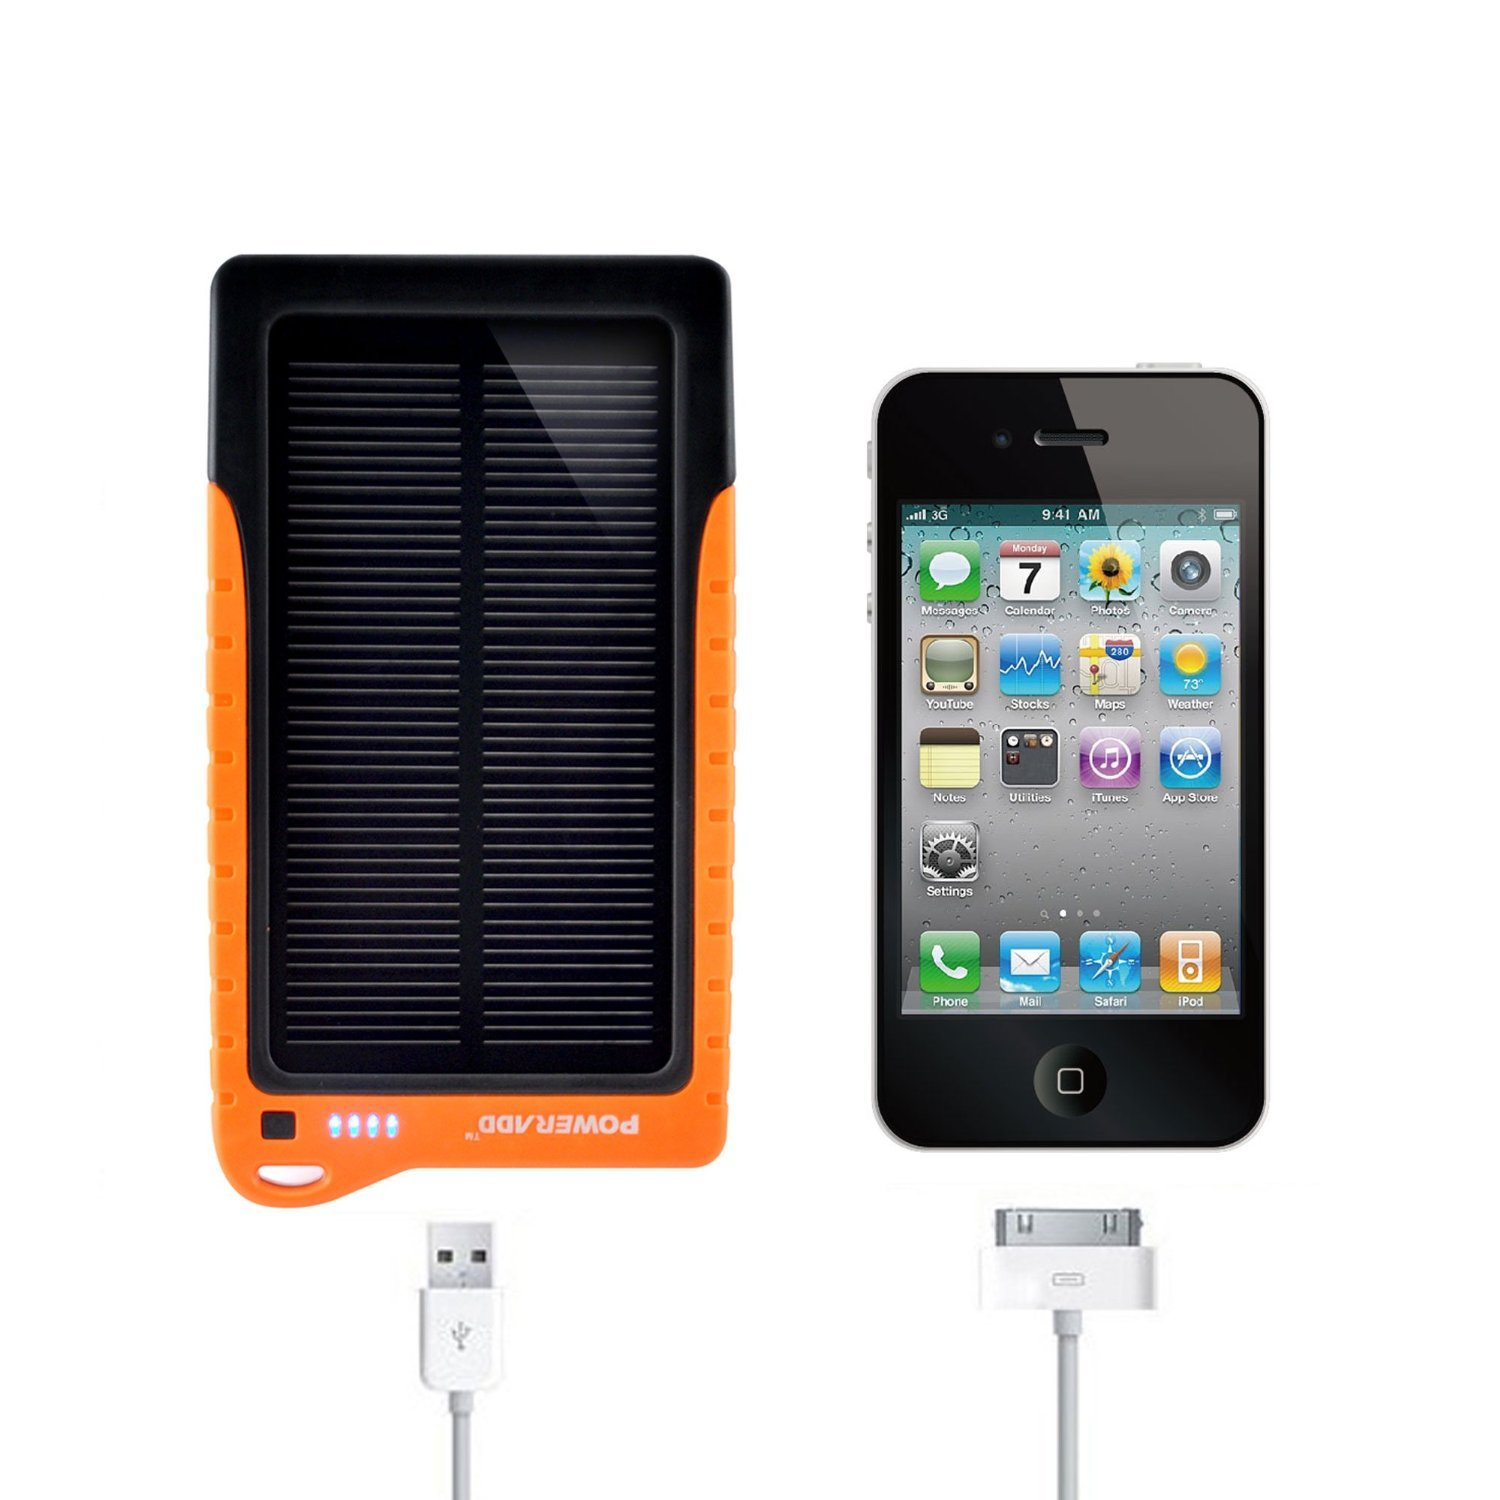 Best Portable Charger For Iphone 4s